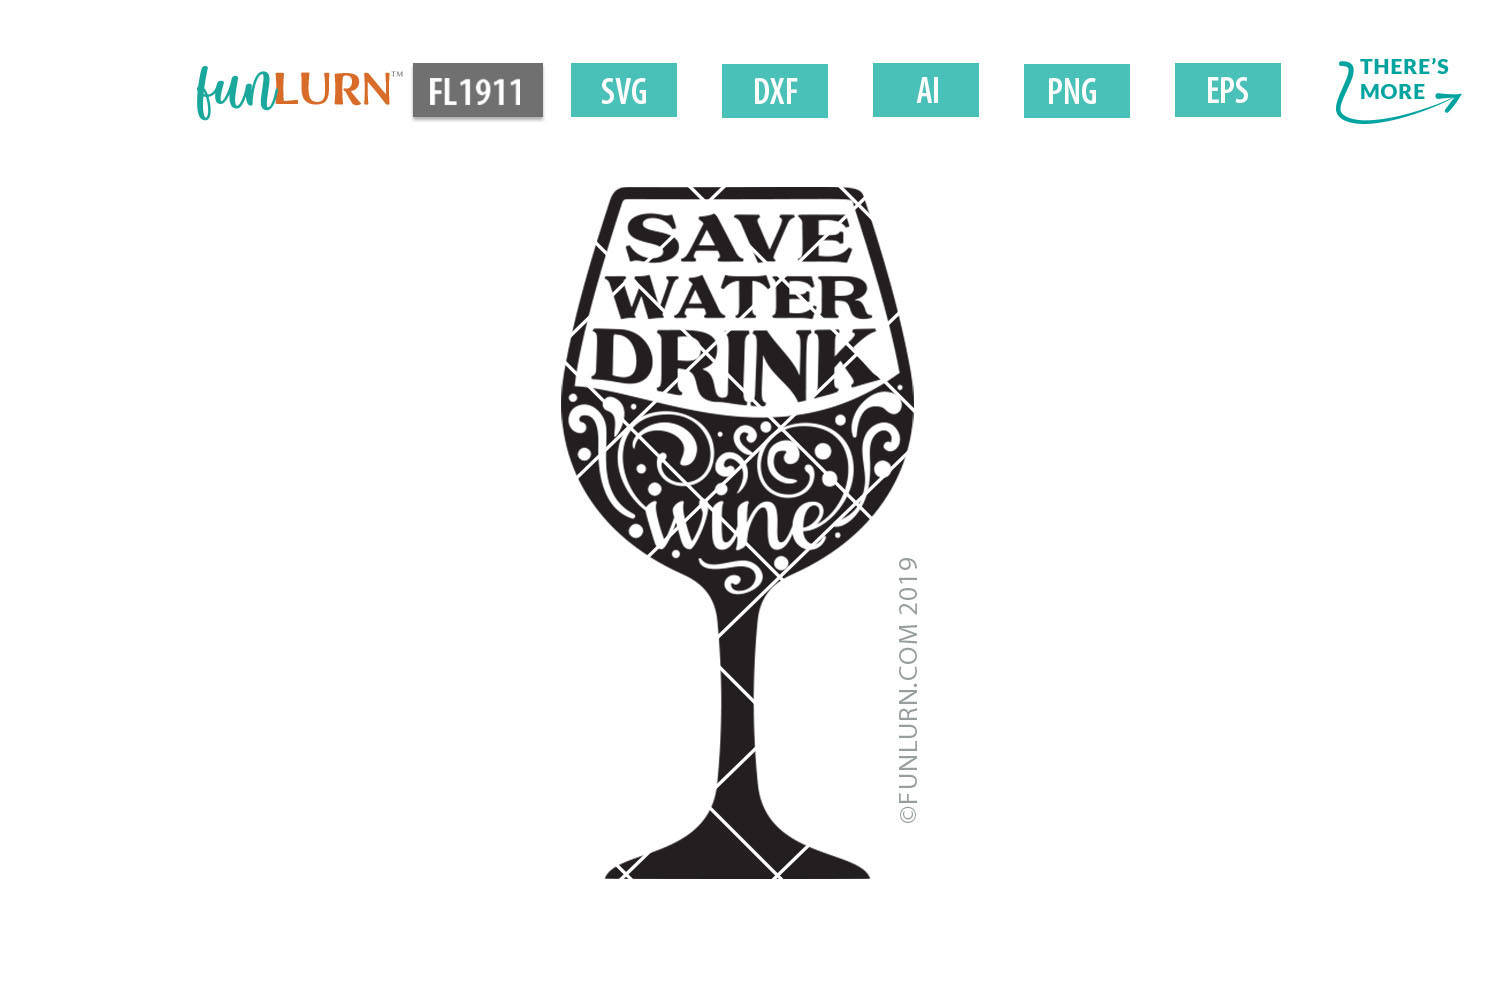 Save Water Drink Wine SVG Cut File example image 2